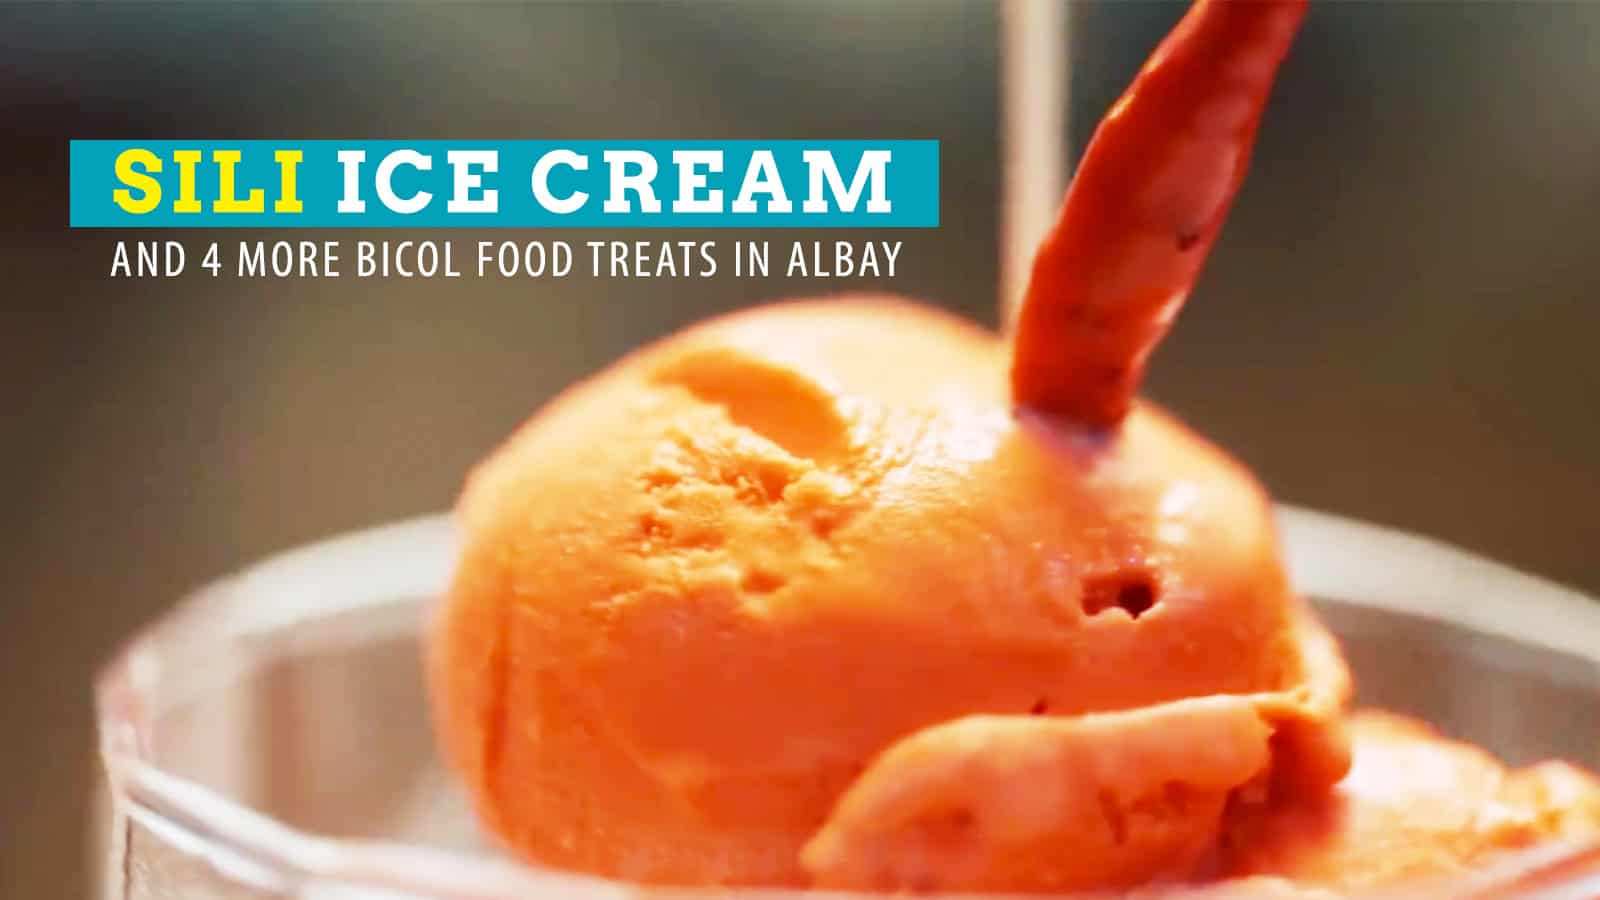 5 Hot Bicolano Dishes to Try in Albay (Sili Ice Cream